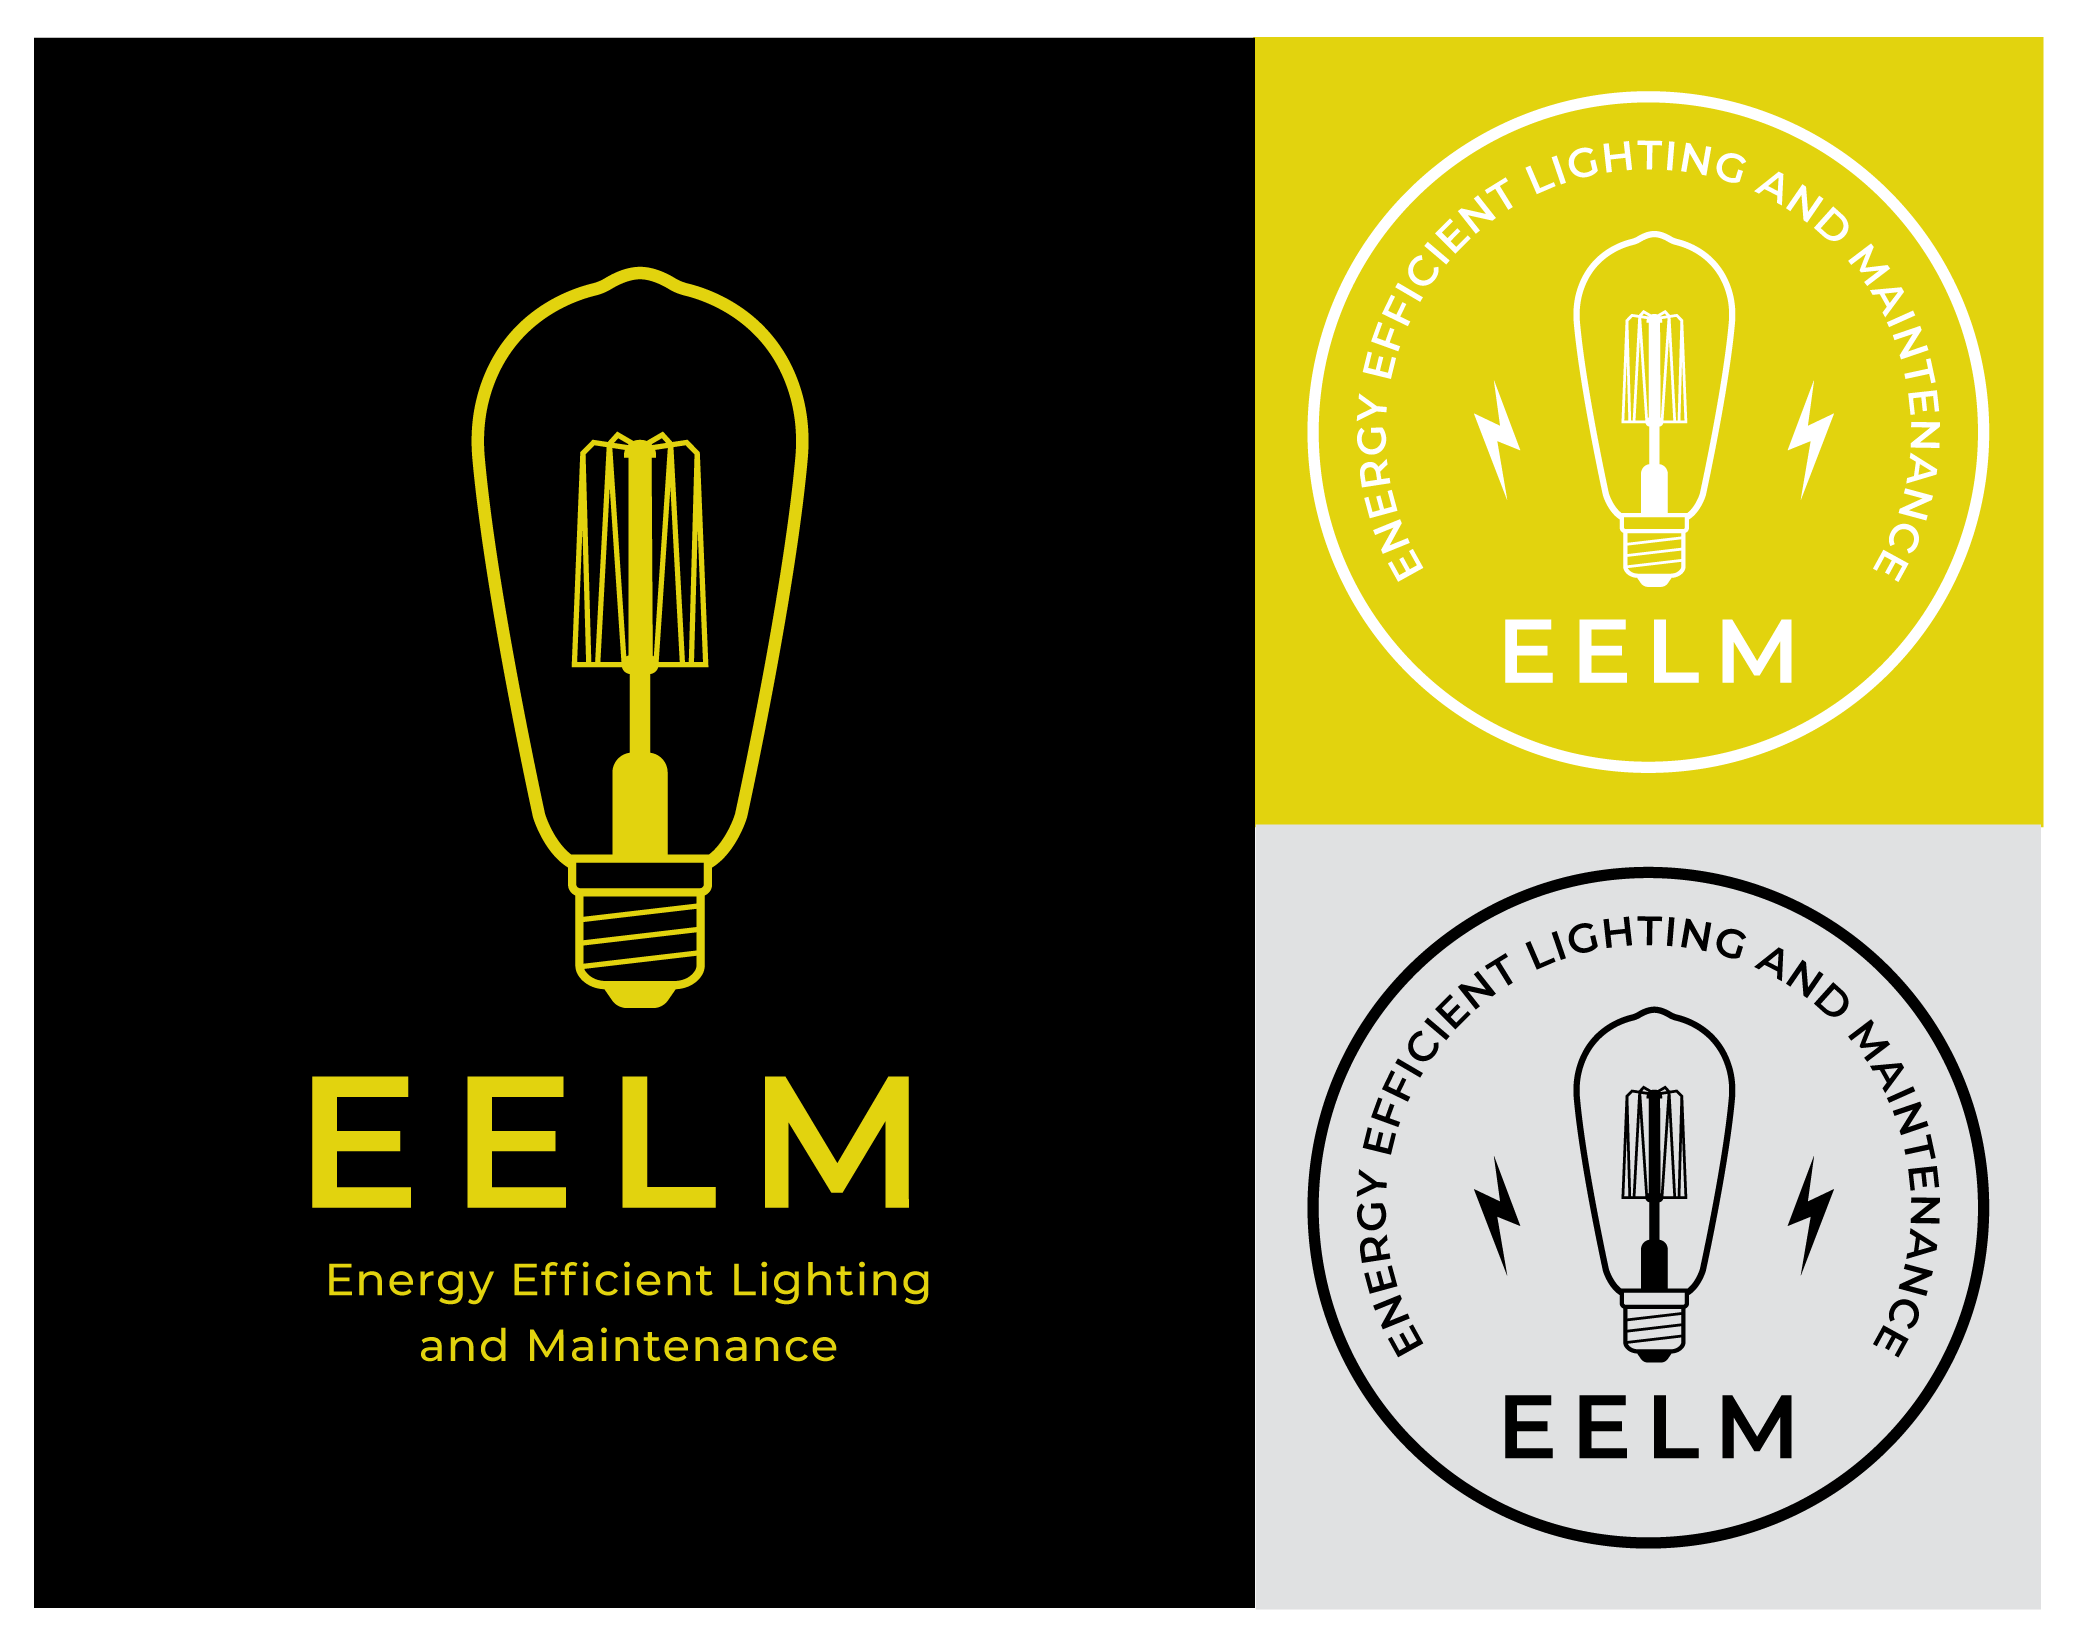 EELM Logo and Badge